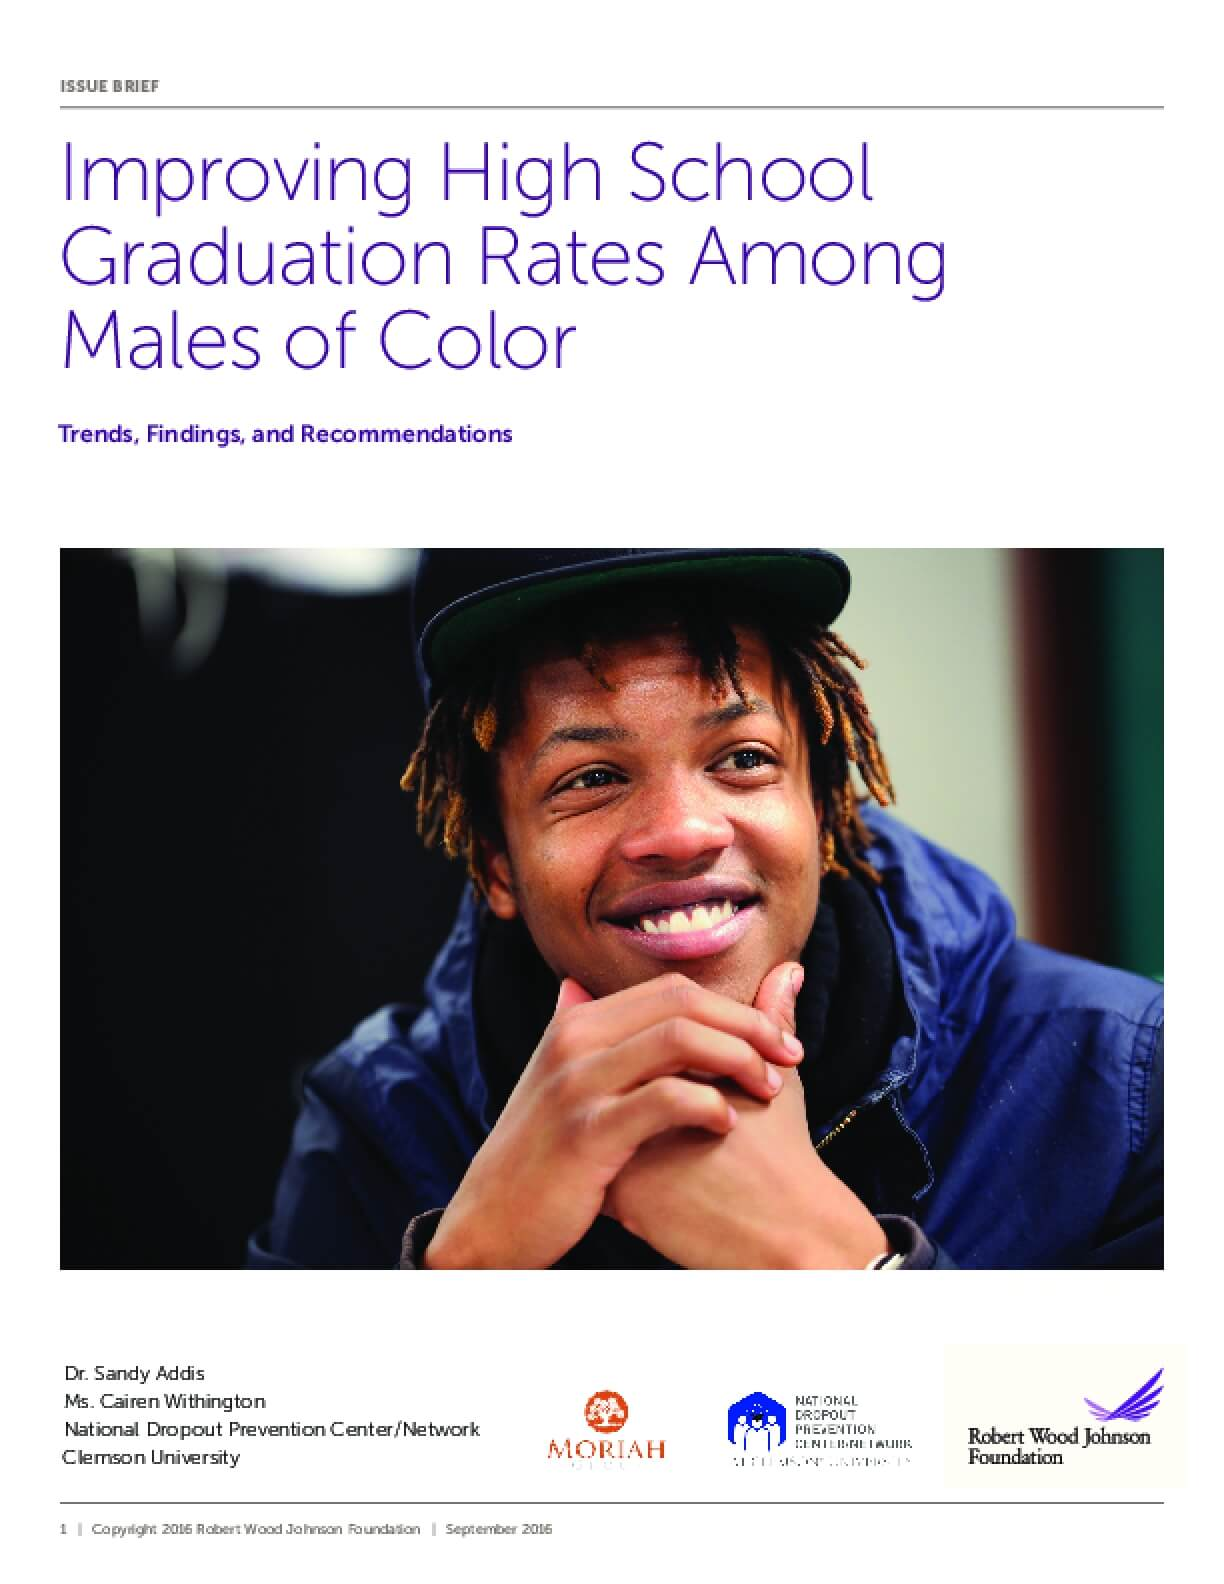 Improving High School Graduation Rates Among Males of Color